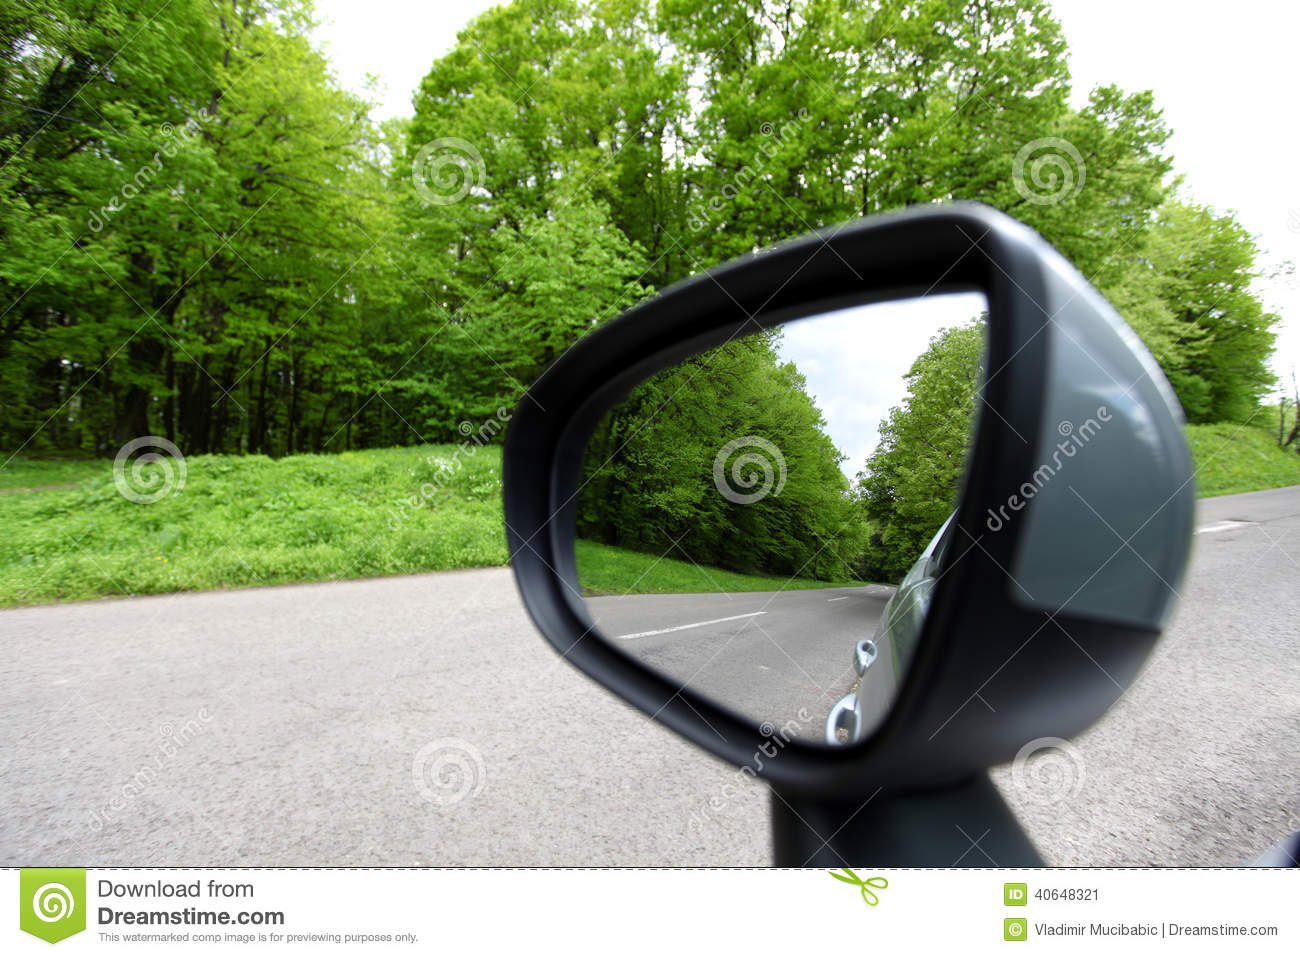 Forest road reflection, rearview car driving mirror view green